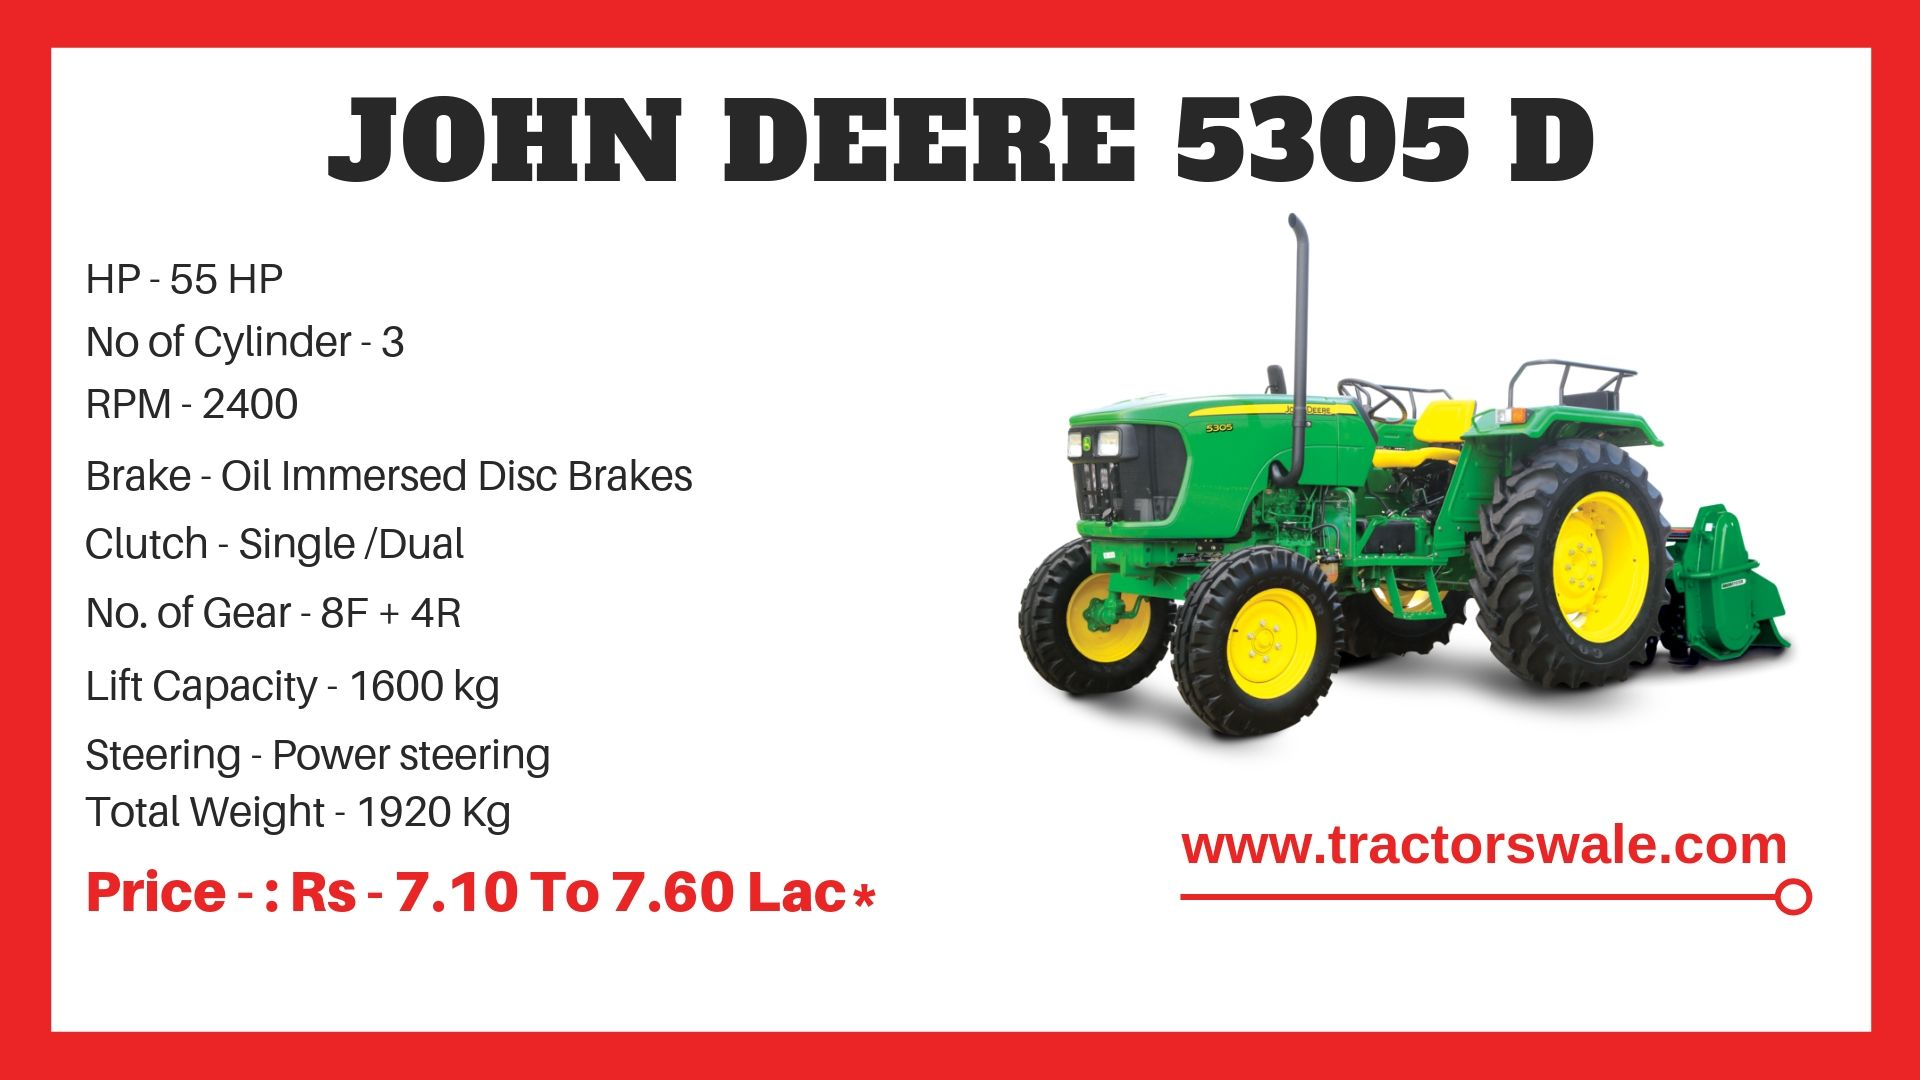 John Deere 5305 D Tractor Specifications